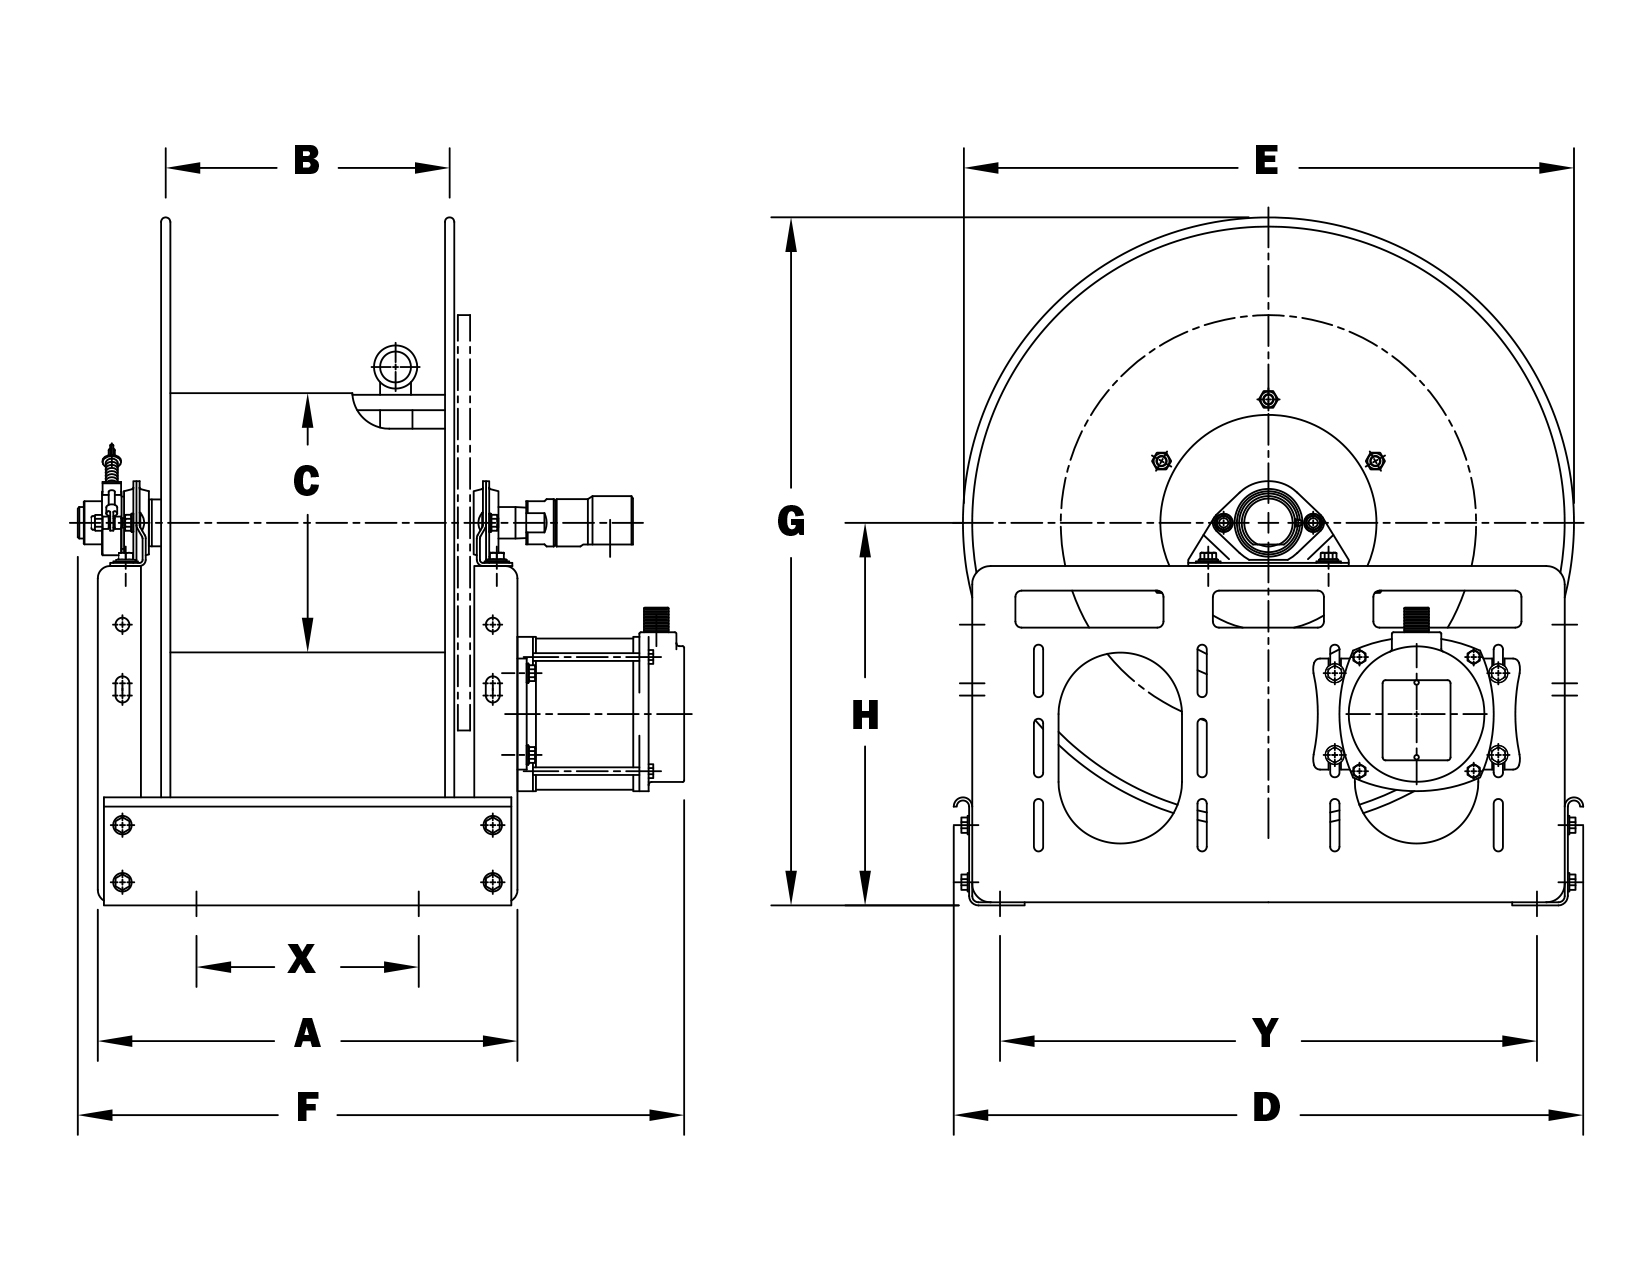 6000 Schematic_1492185554 6000 series hannay reels official site hannay reel wiring diagram at panicattacktreatment.co